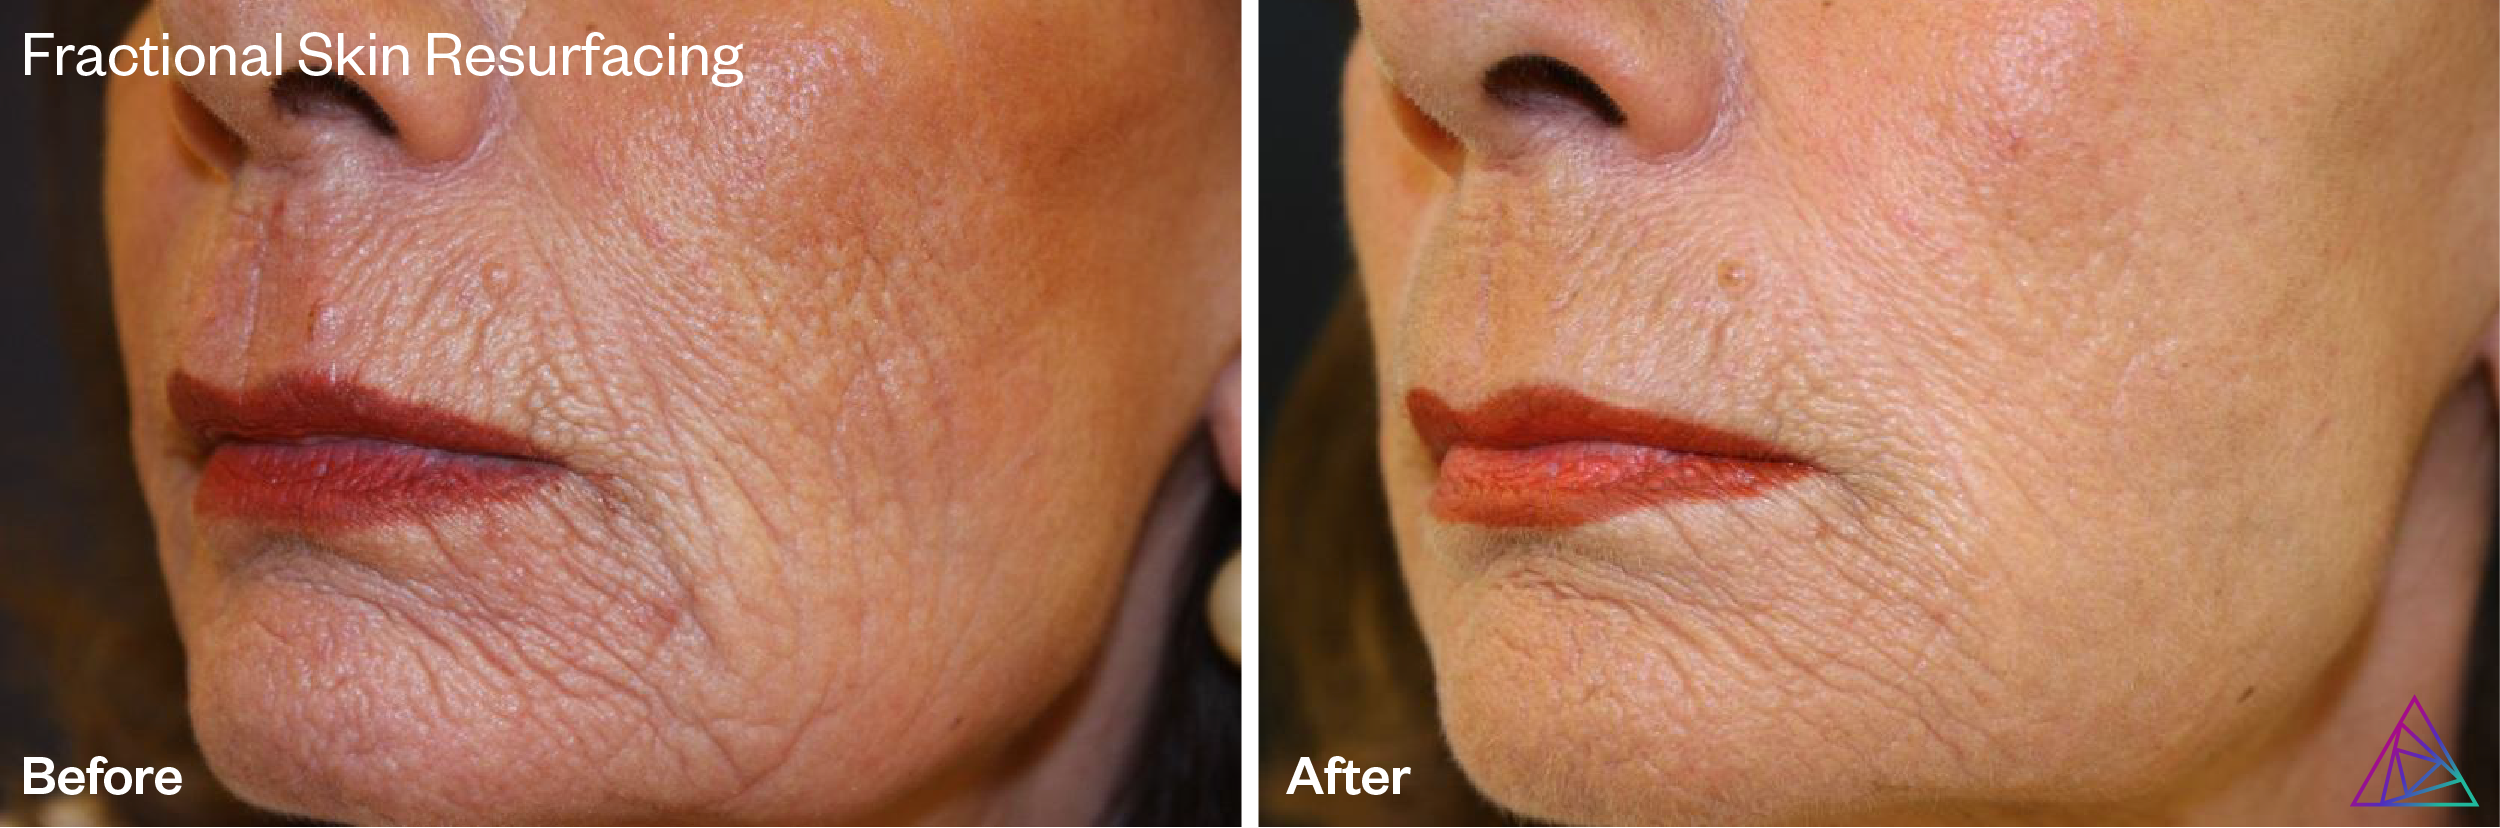 Fractional Skin Resurfacing by Astanza Laser